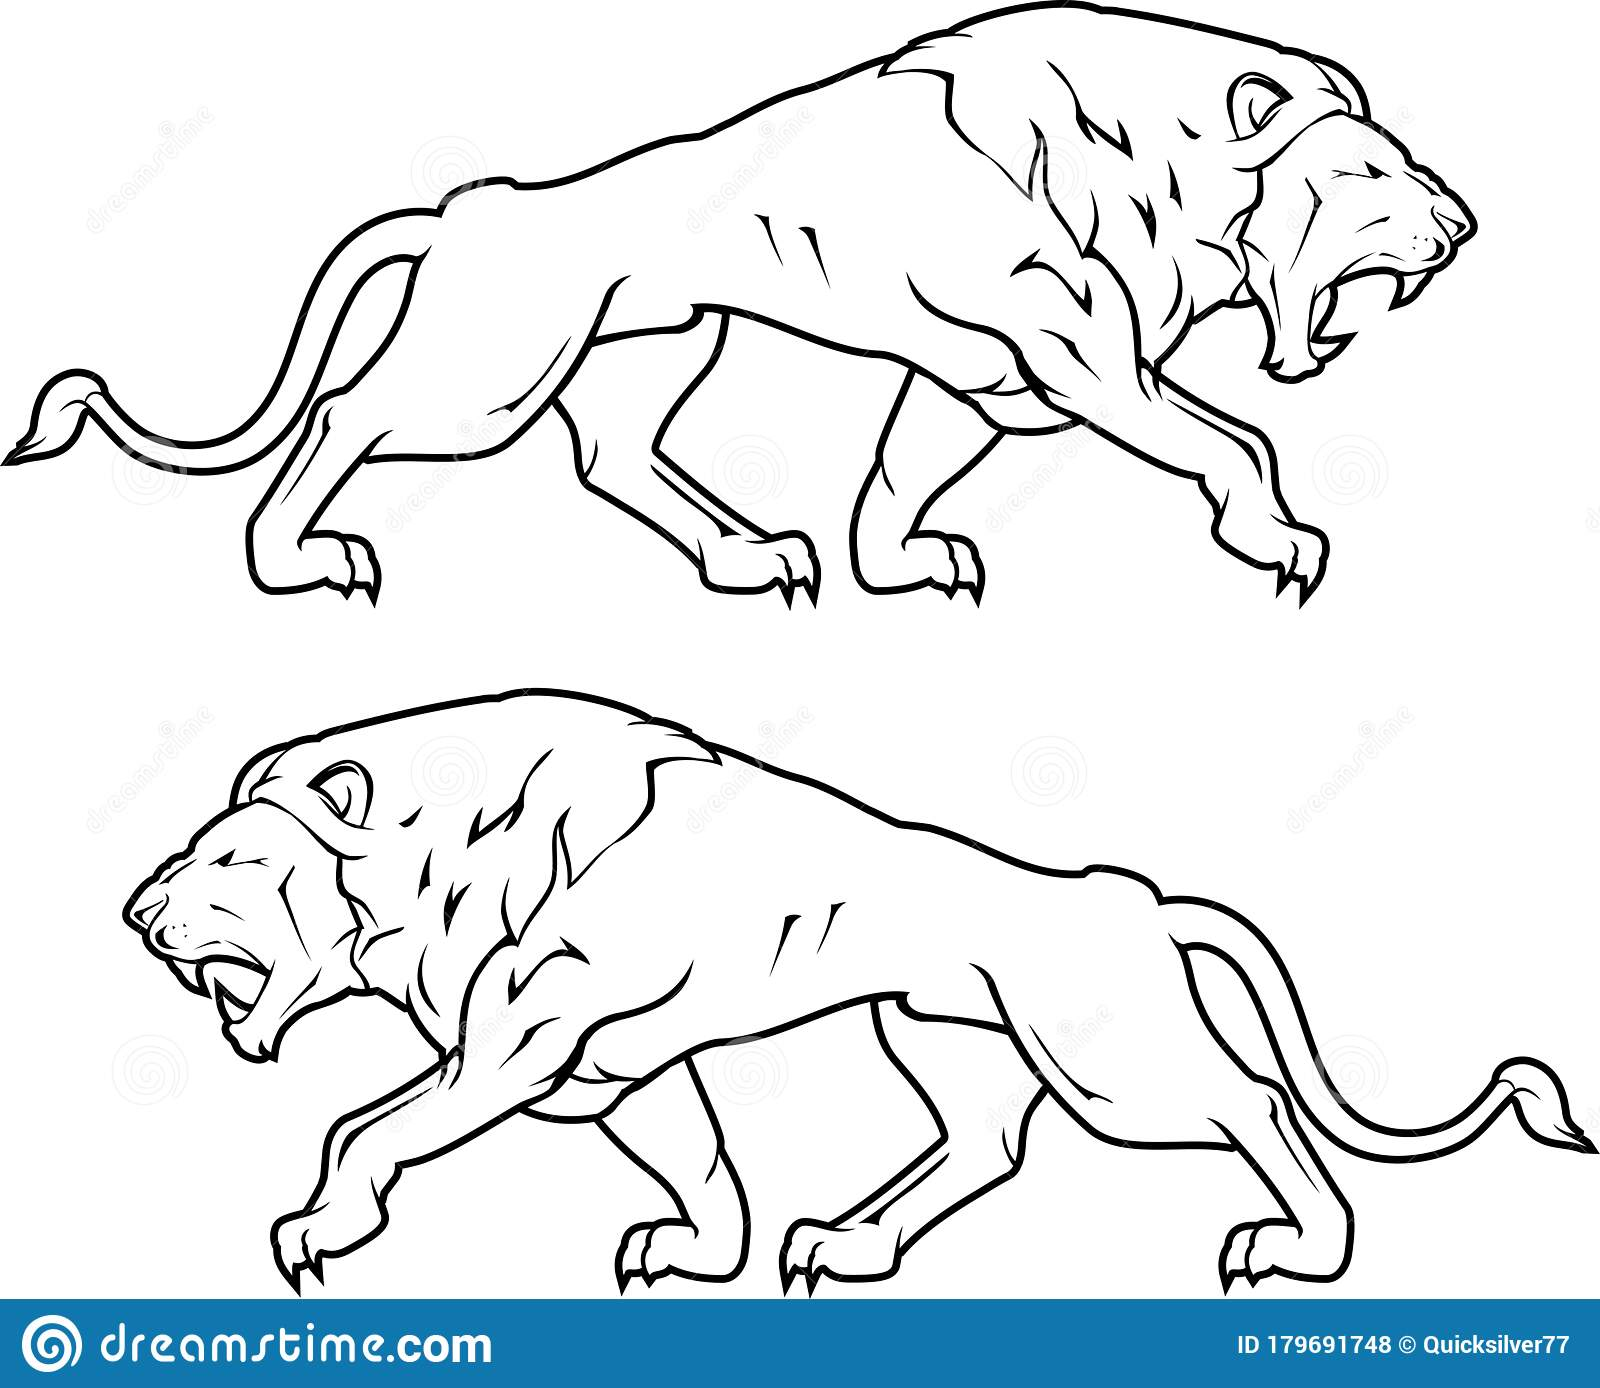 Full Body Lion Stock Illustrations 42 Full Body Lion Stock Illustrations Vectors Clipart Dreamstime Lion tamers guide to teaching. dreamstime com